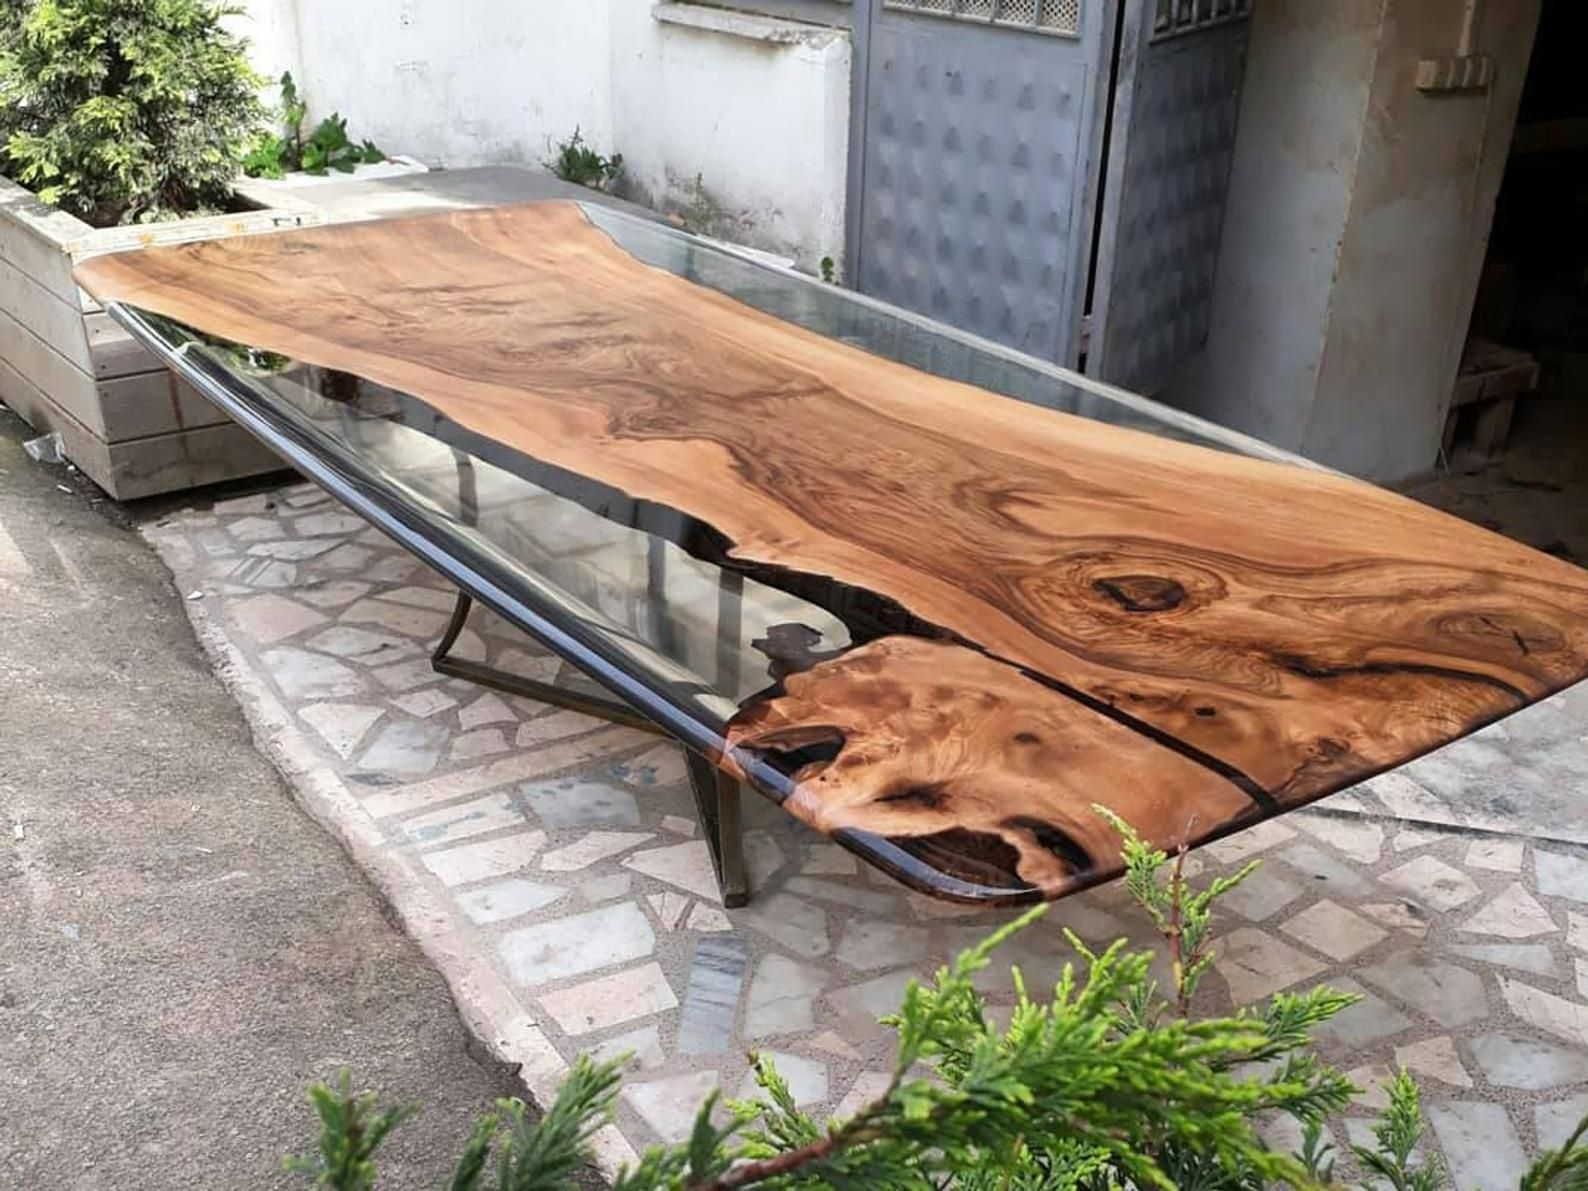 Custom Order For Raymond From Malaysiaconference Table Etsy Resin Table Dining Table Wood Resin Table